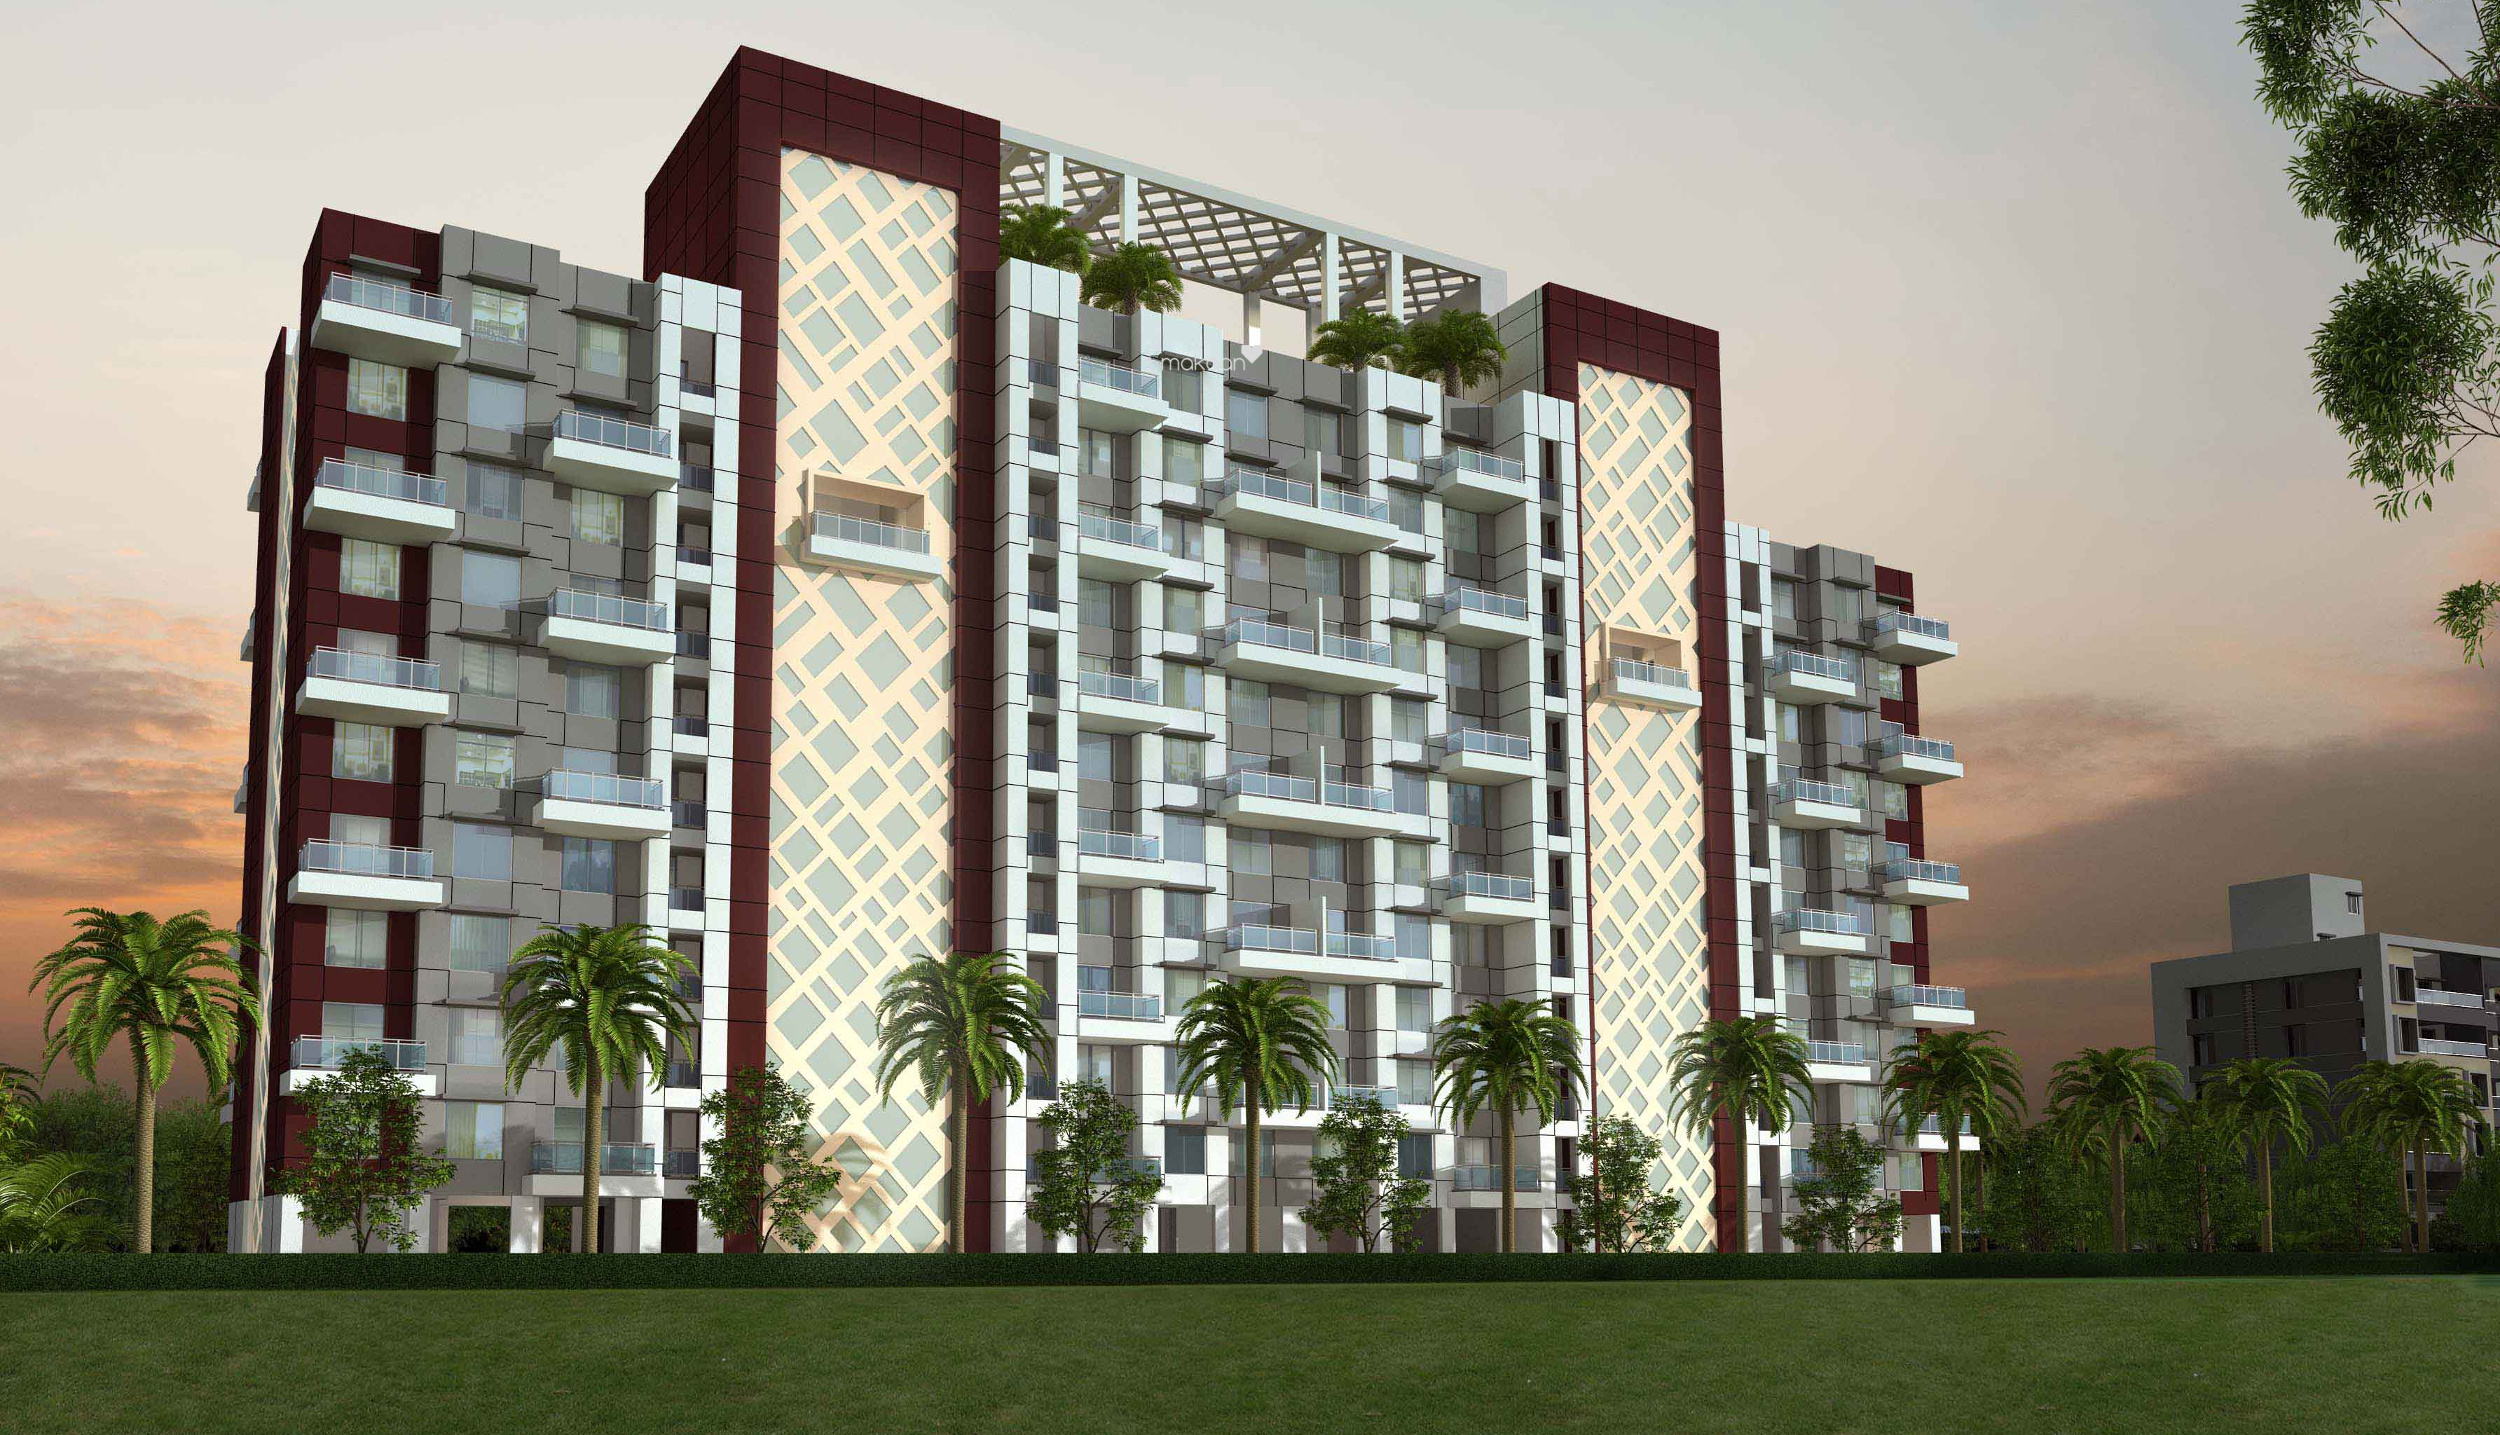 1191 sq ft 2BHK 2BHK+2T (1,191 sq ft) Property By Proptiger In Oasis, Wagholi